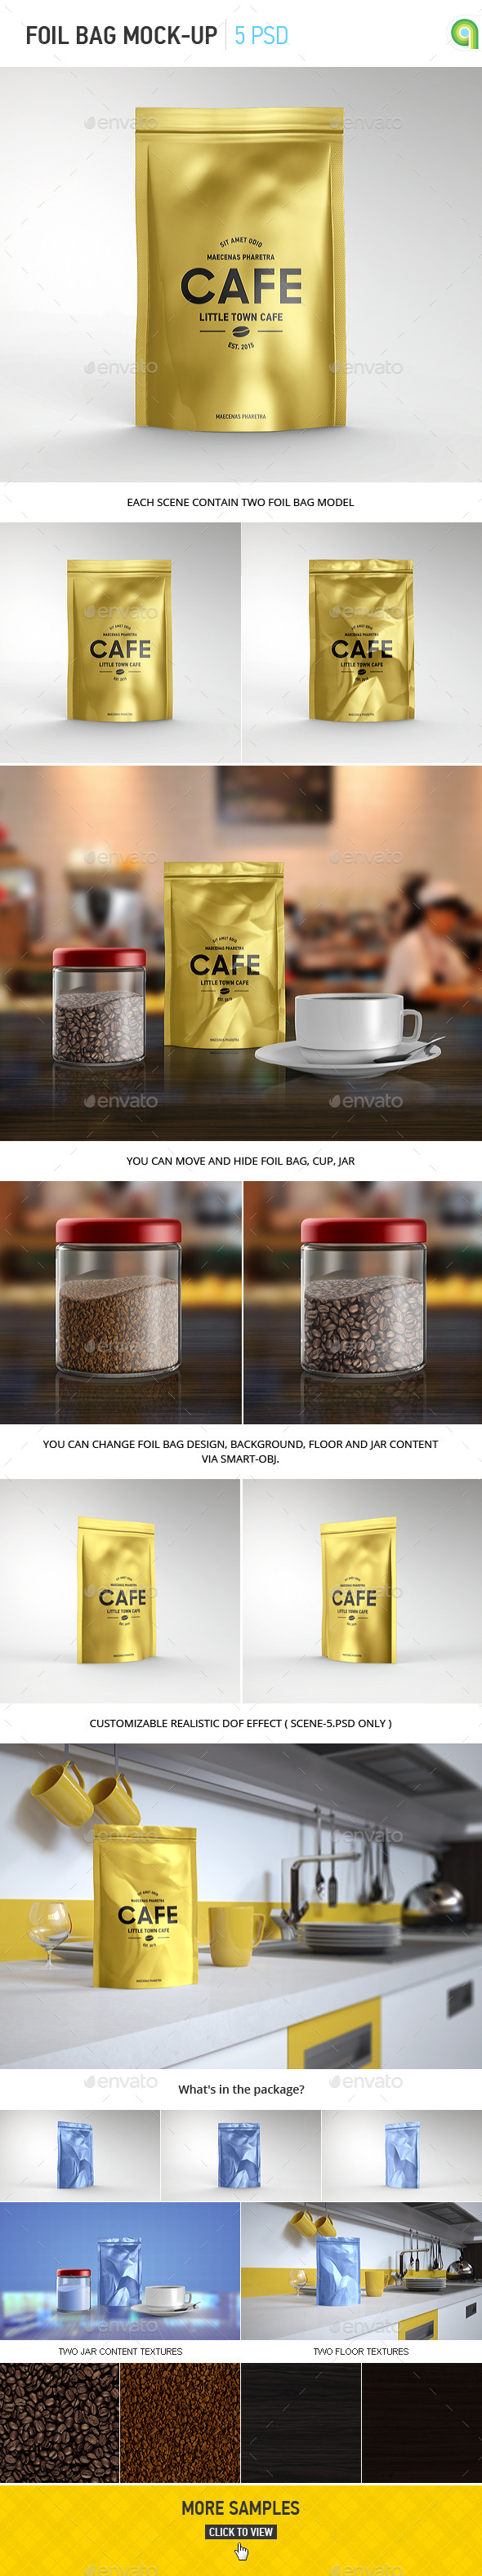 GraphicRiver Foil Bag Pack Mockup 10950568